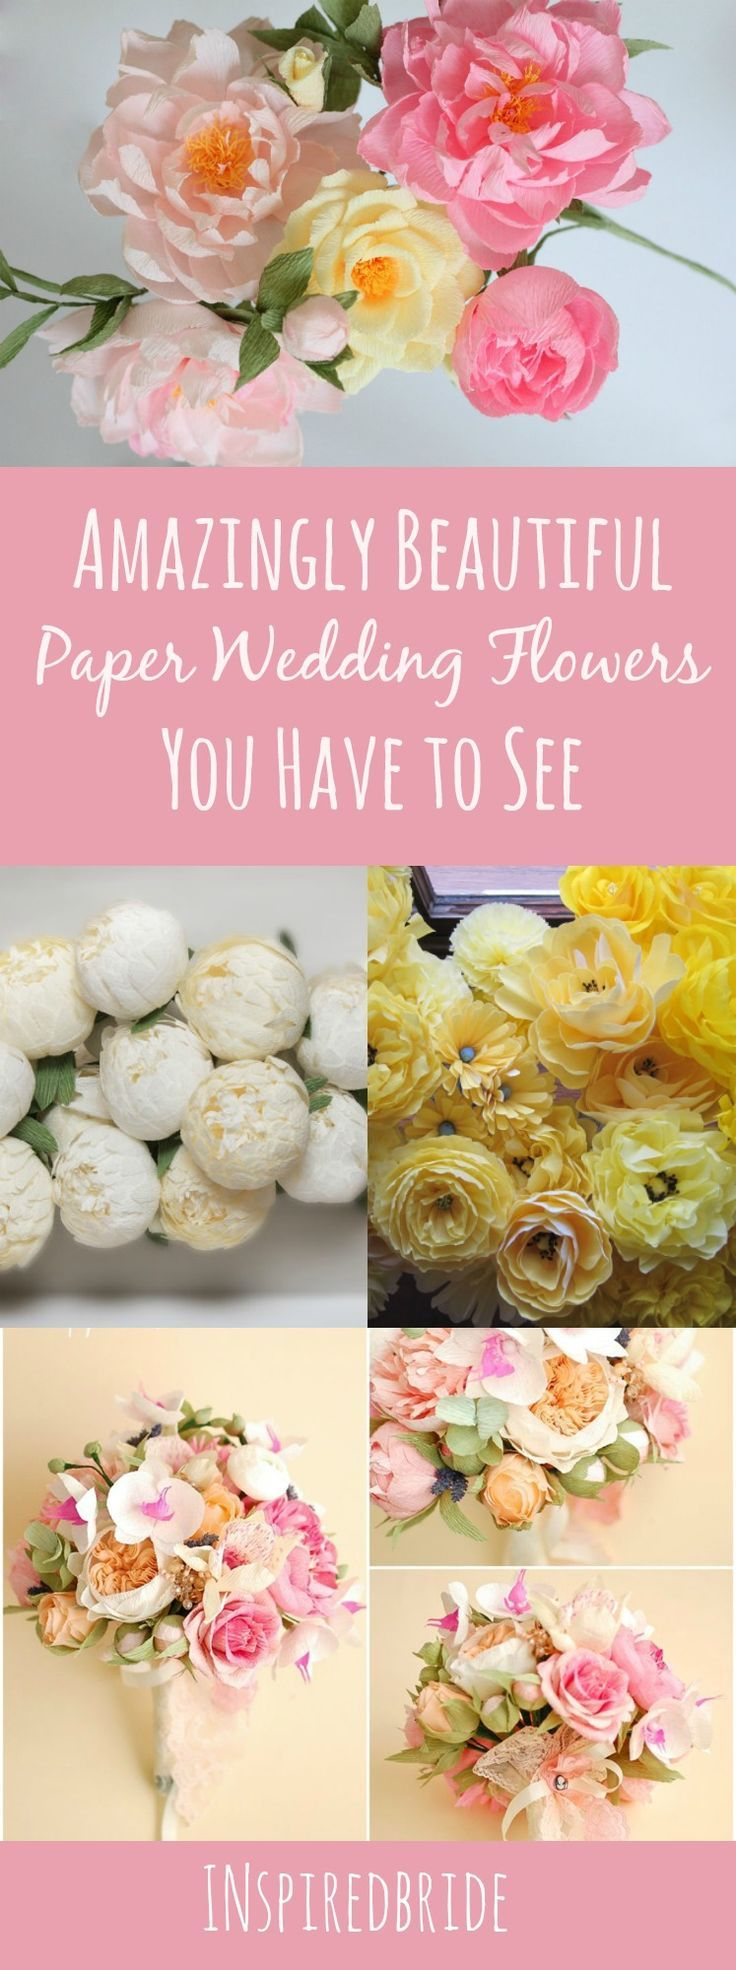 Amazingly Beautiful Paper Wedding Flowers You Have to See | Creative ...